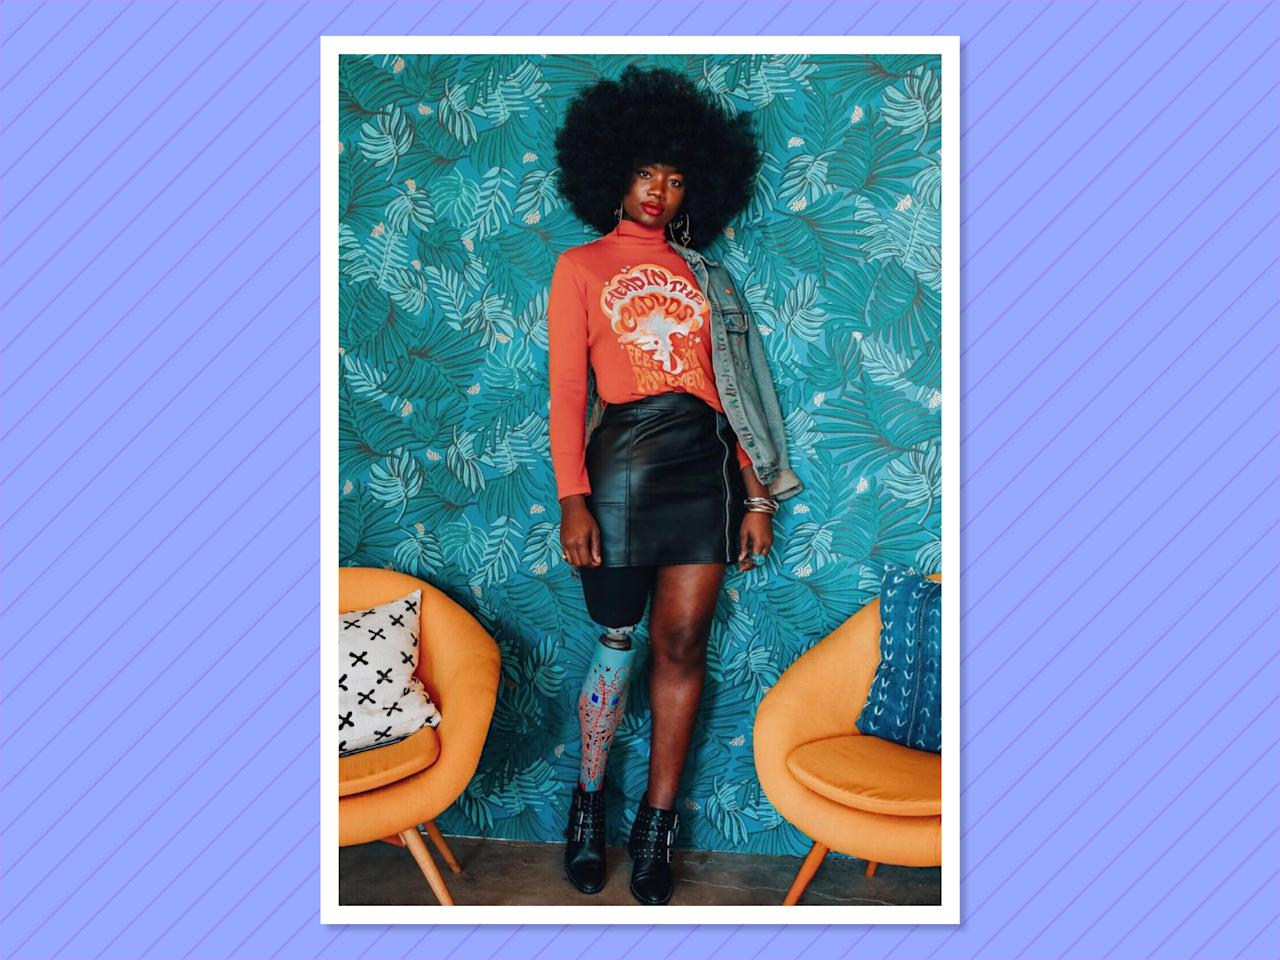 """<p>Having just scored a """"Teen Vogue"""" cover, <a rel=""""nofollow"""" href=""""https://www.instagram.com/mamacaxx/?hl=en"""">Cax</a> is a super fashionable blogger, model, amputee and overall inspiration to us all. (Photo: Instagram/mamacaxx) </p>"""